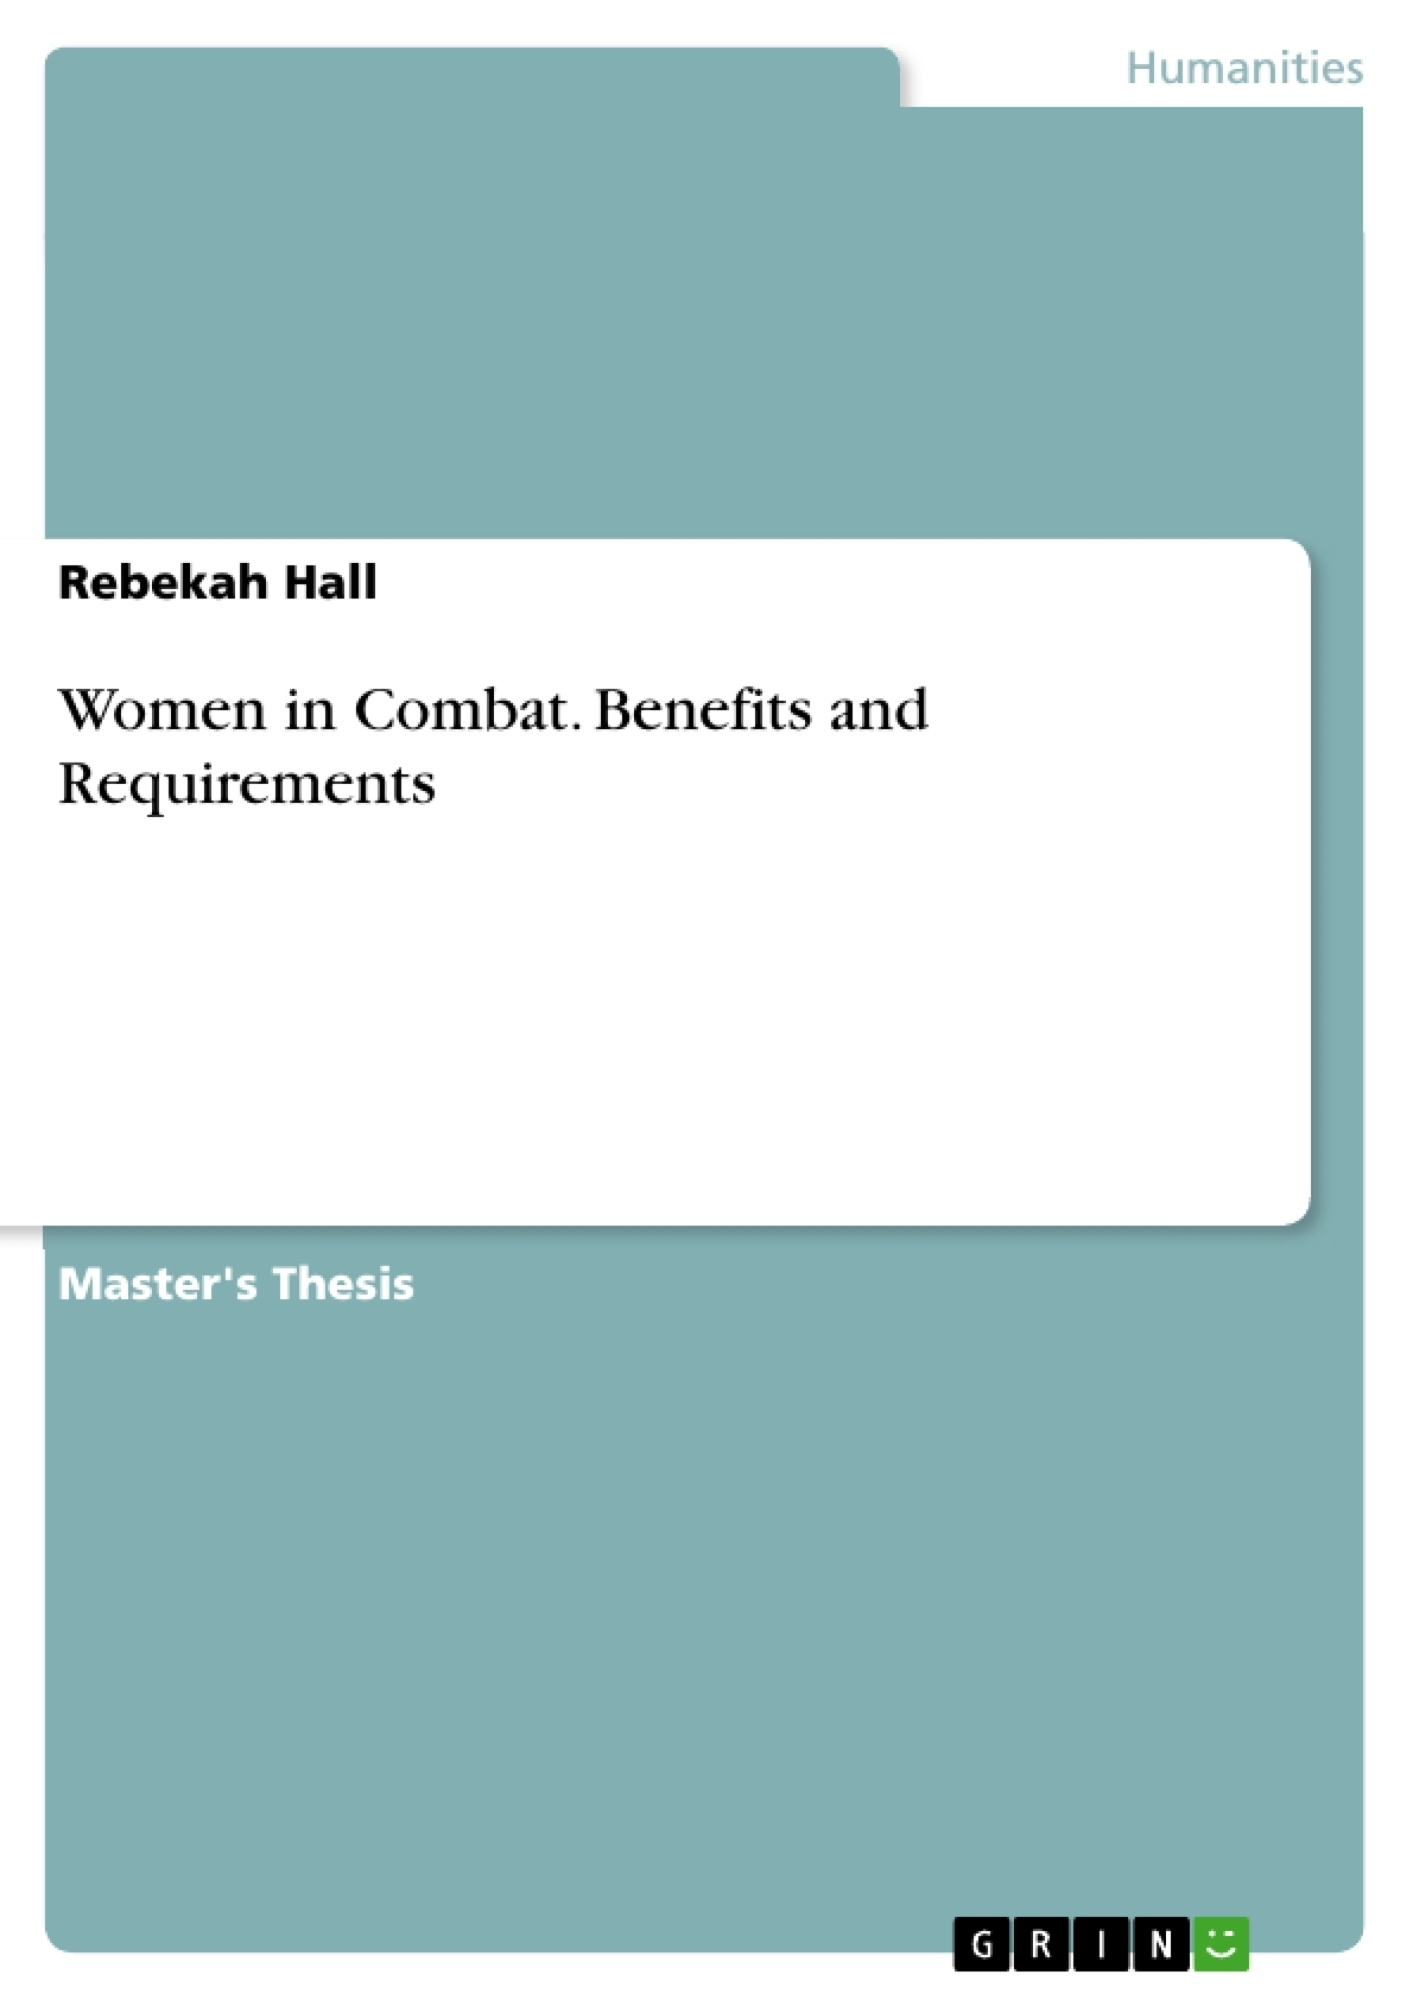 Title: Women in Combat. Benefits and Requirements